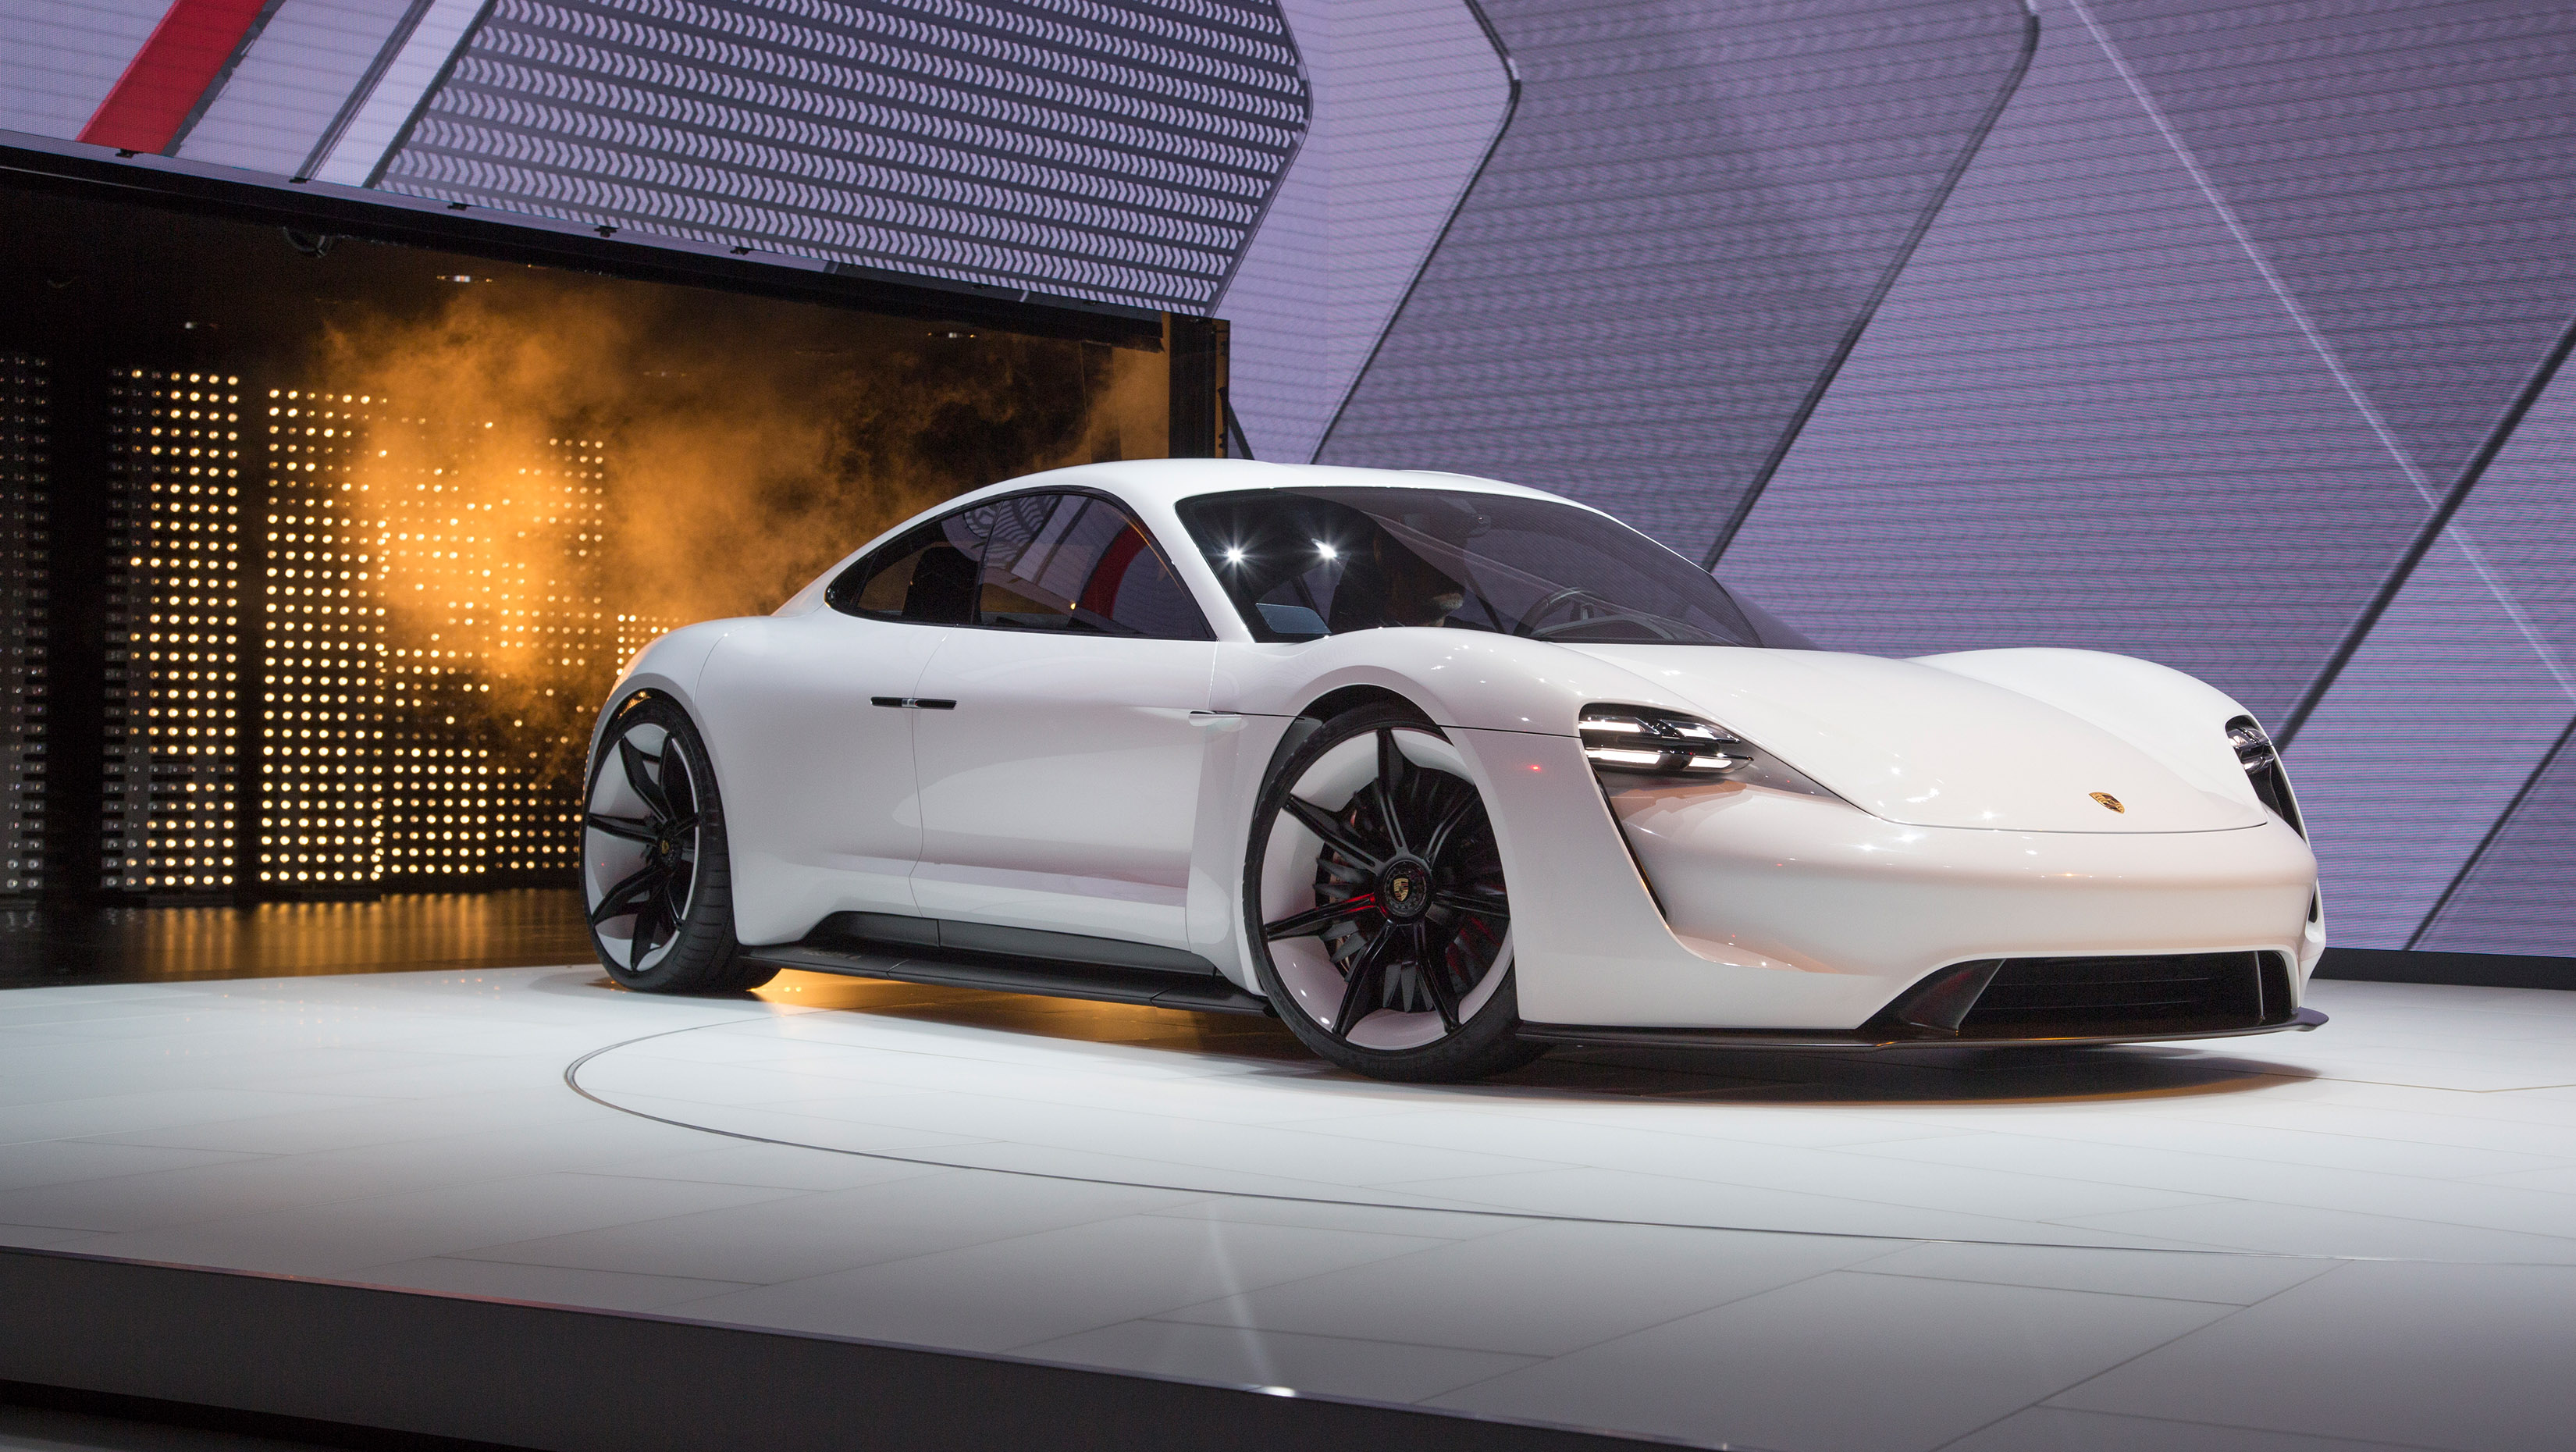 Porsche EV, the 'Mission E,' Set for 2019 - The Green Car Guy